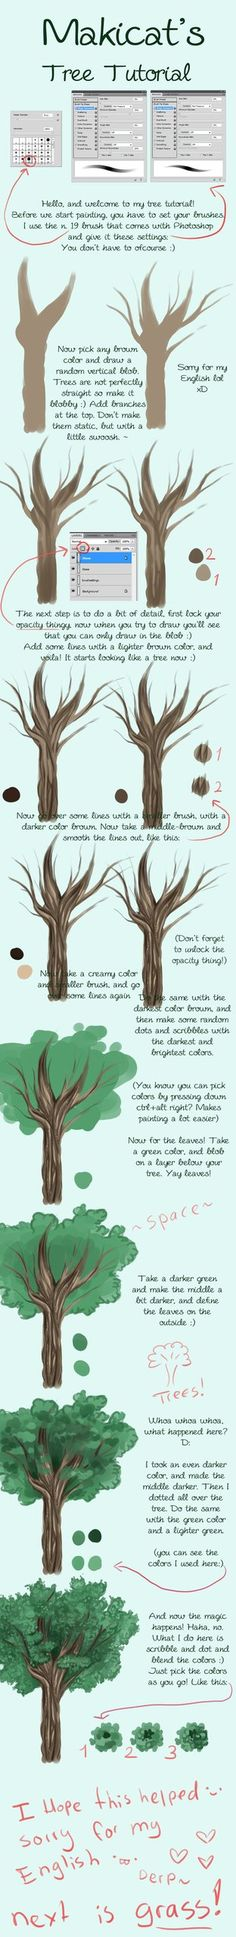 A quick little tutorial about how I draw grass. I created it in Photoshop Elements but it is applicable to almost any good art program. Digital Painting Tutorials, Digital Art Tutorial, Art Tutorials, Disney Drawings, Cool Drawings, Drawing Disney, Pencil Drawings, Nature Landscape, Landscape Elements